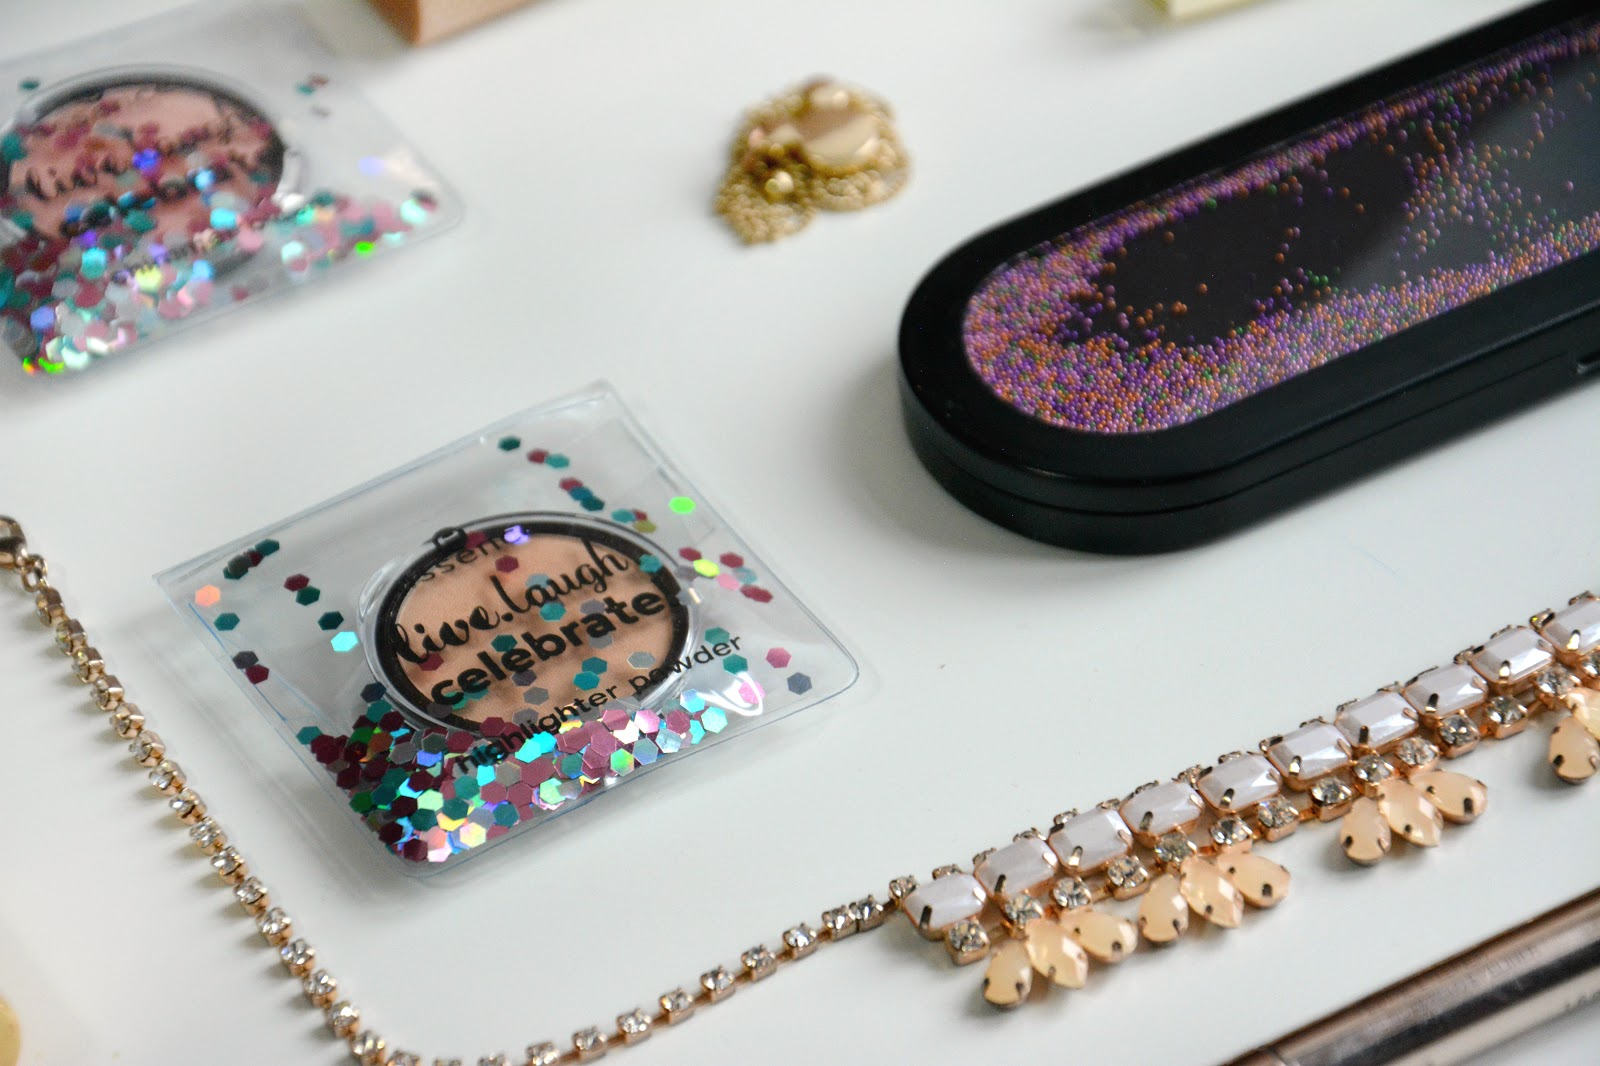 Essence My Must Haves Palette, Essence My Must Haves Highlighting Powder 01; Essence My Must Haves Soft Shimmer Blush 01